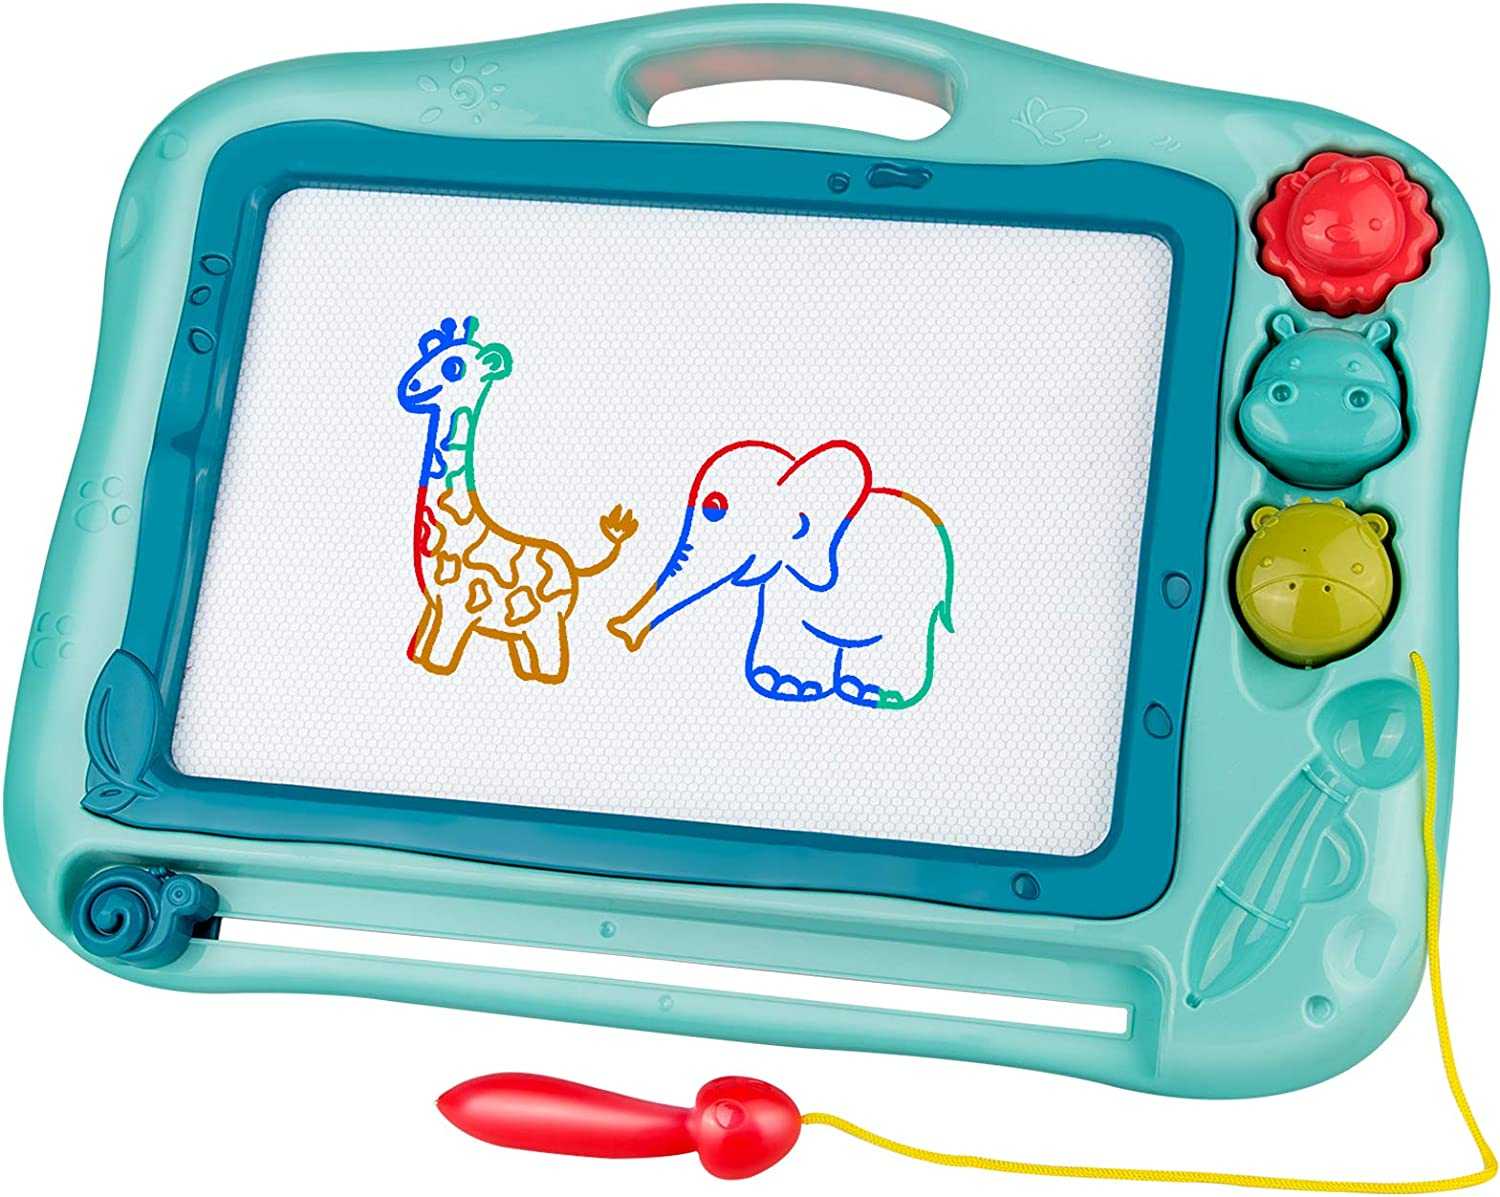 YIGEAN Magnetic Drawing Board Toy for Kids,Erasable Doodle Board for for 2 3 4 5 6 7 8 Year Old Girls and Boys Preschool Educational Learning Toy Gift for Kids Toddlers,Blue